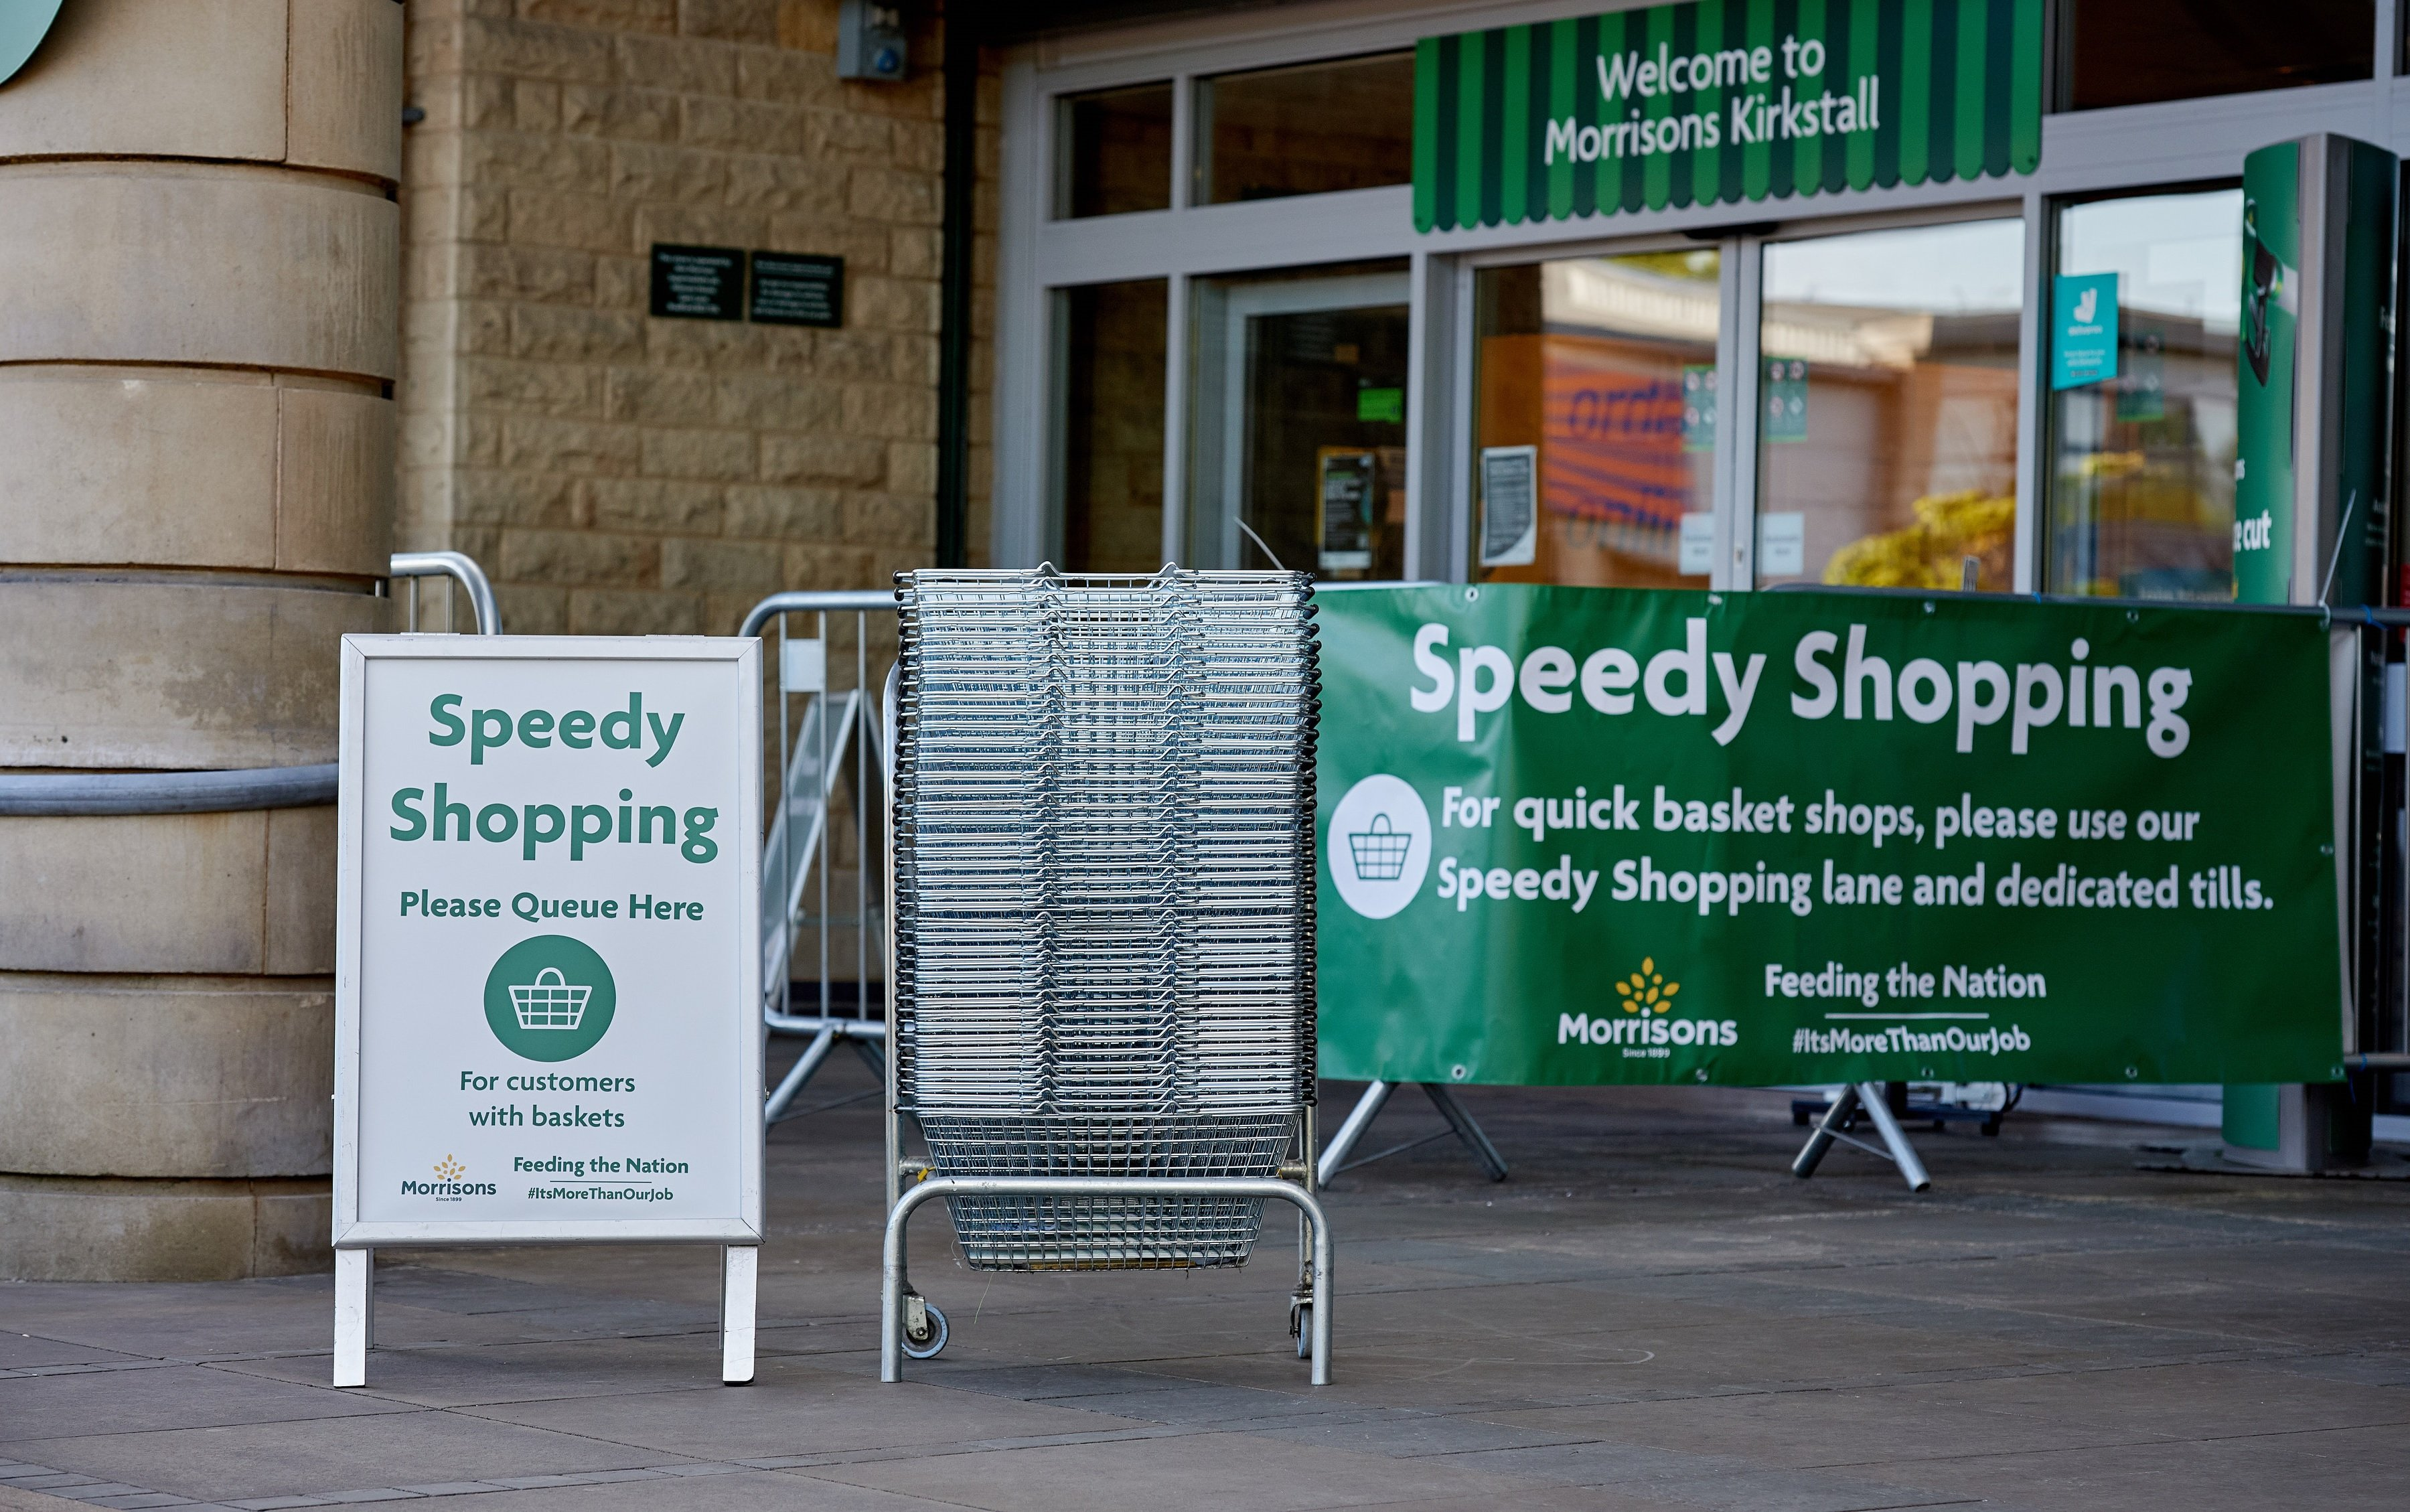 Morrisons introduces 'Speedy Shopping' for basket customers